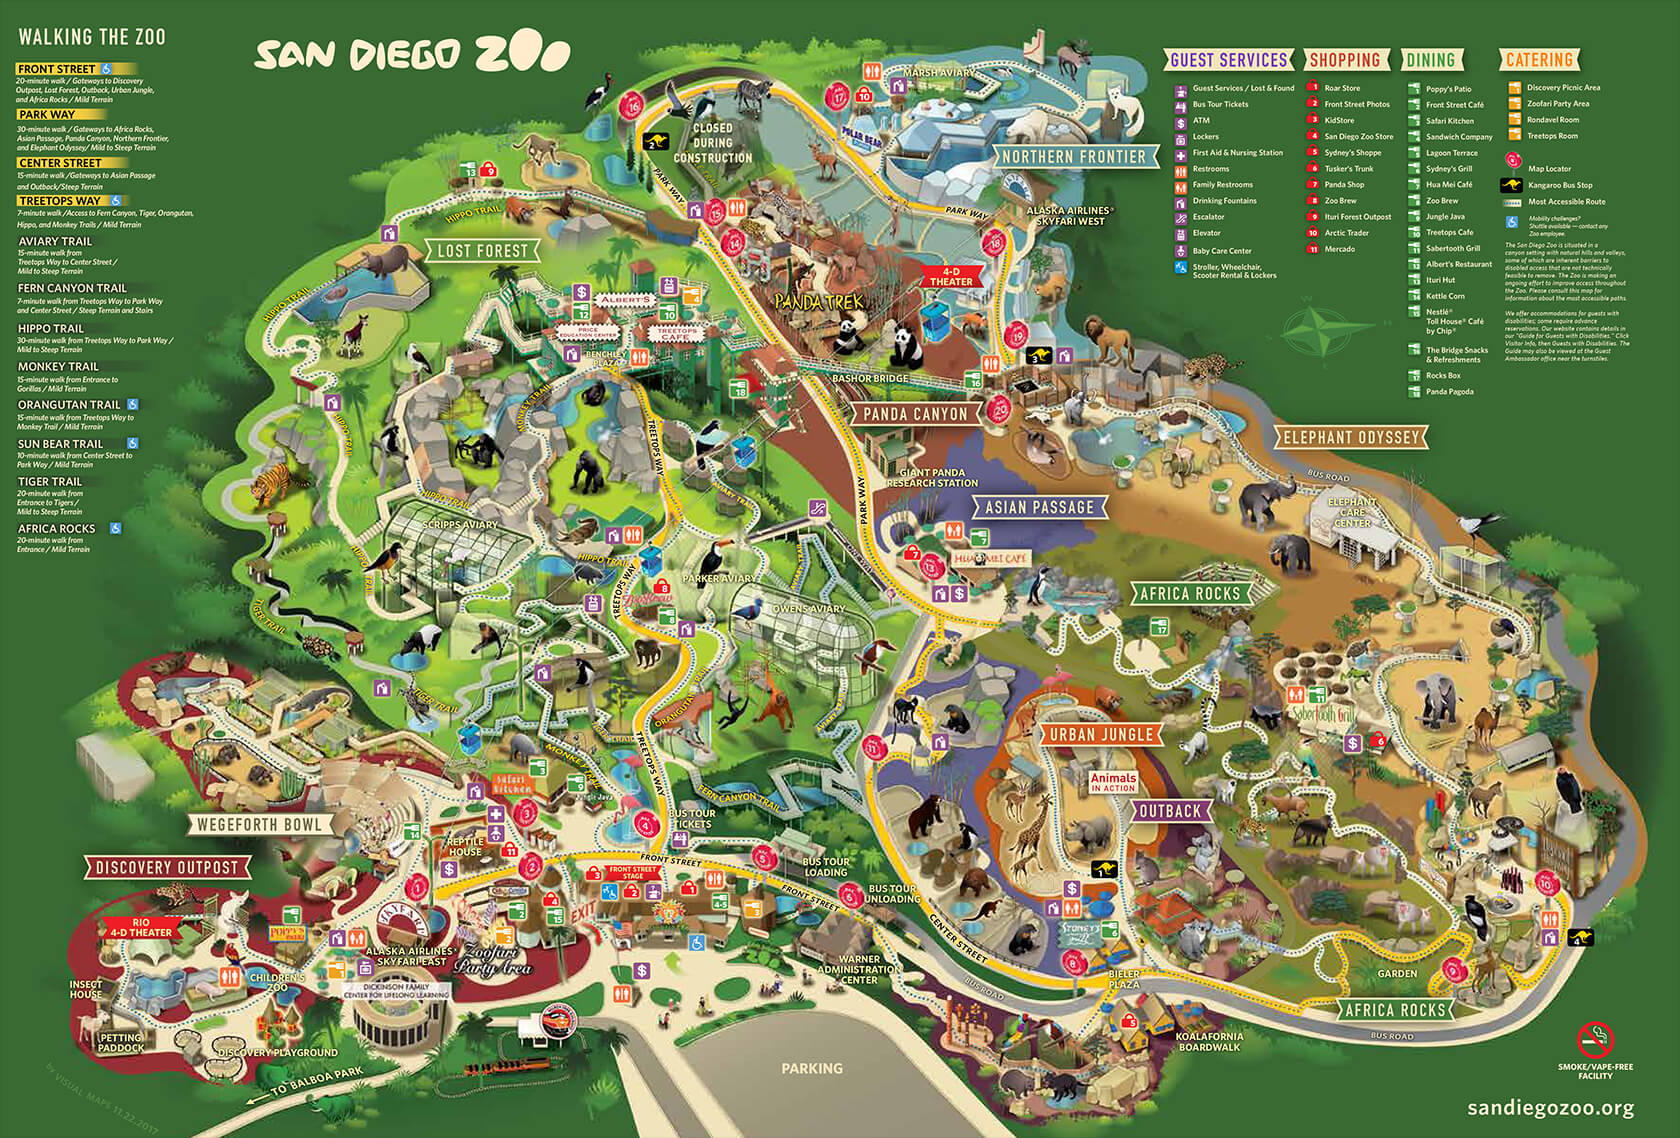 SanDiegoZoo_GuideMap_11-22-17-REV2.jpg